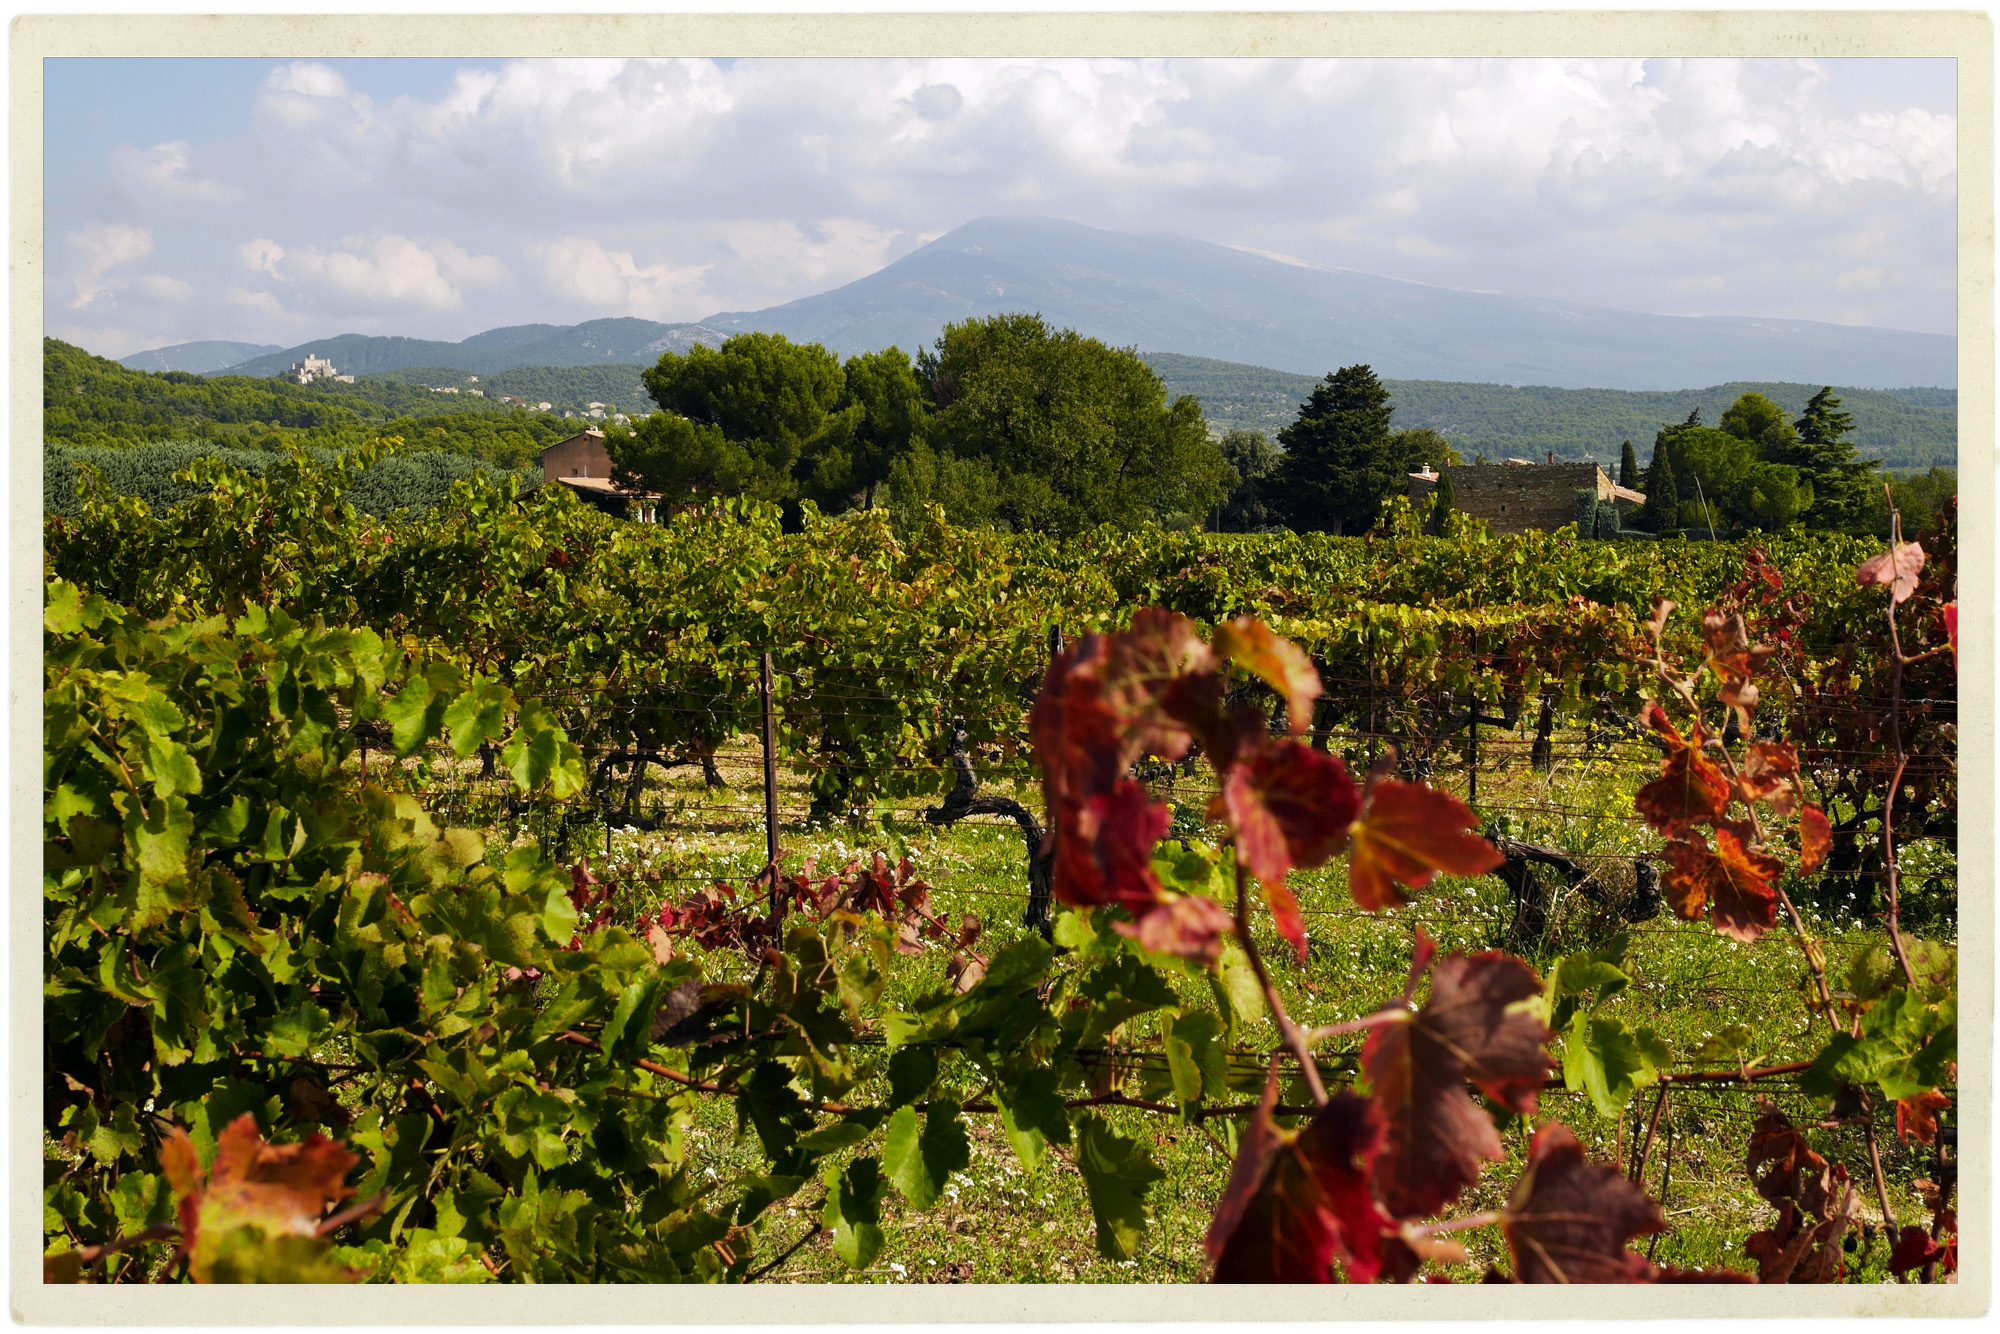 The view of Le Barroux and Ventoux from my last ride in Provence.